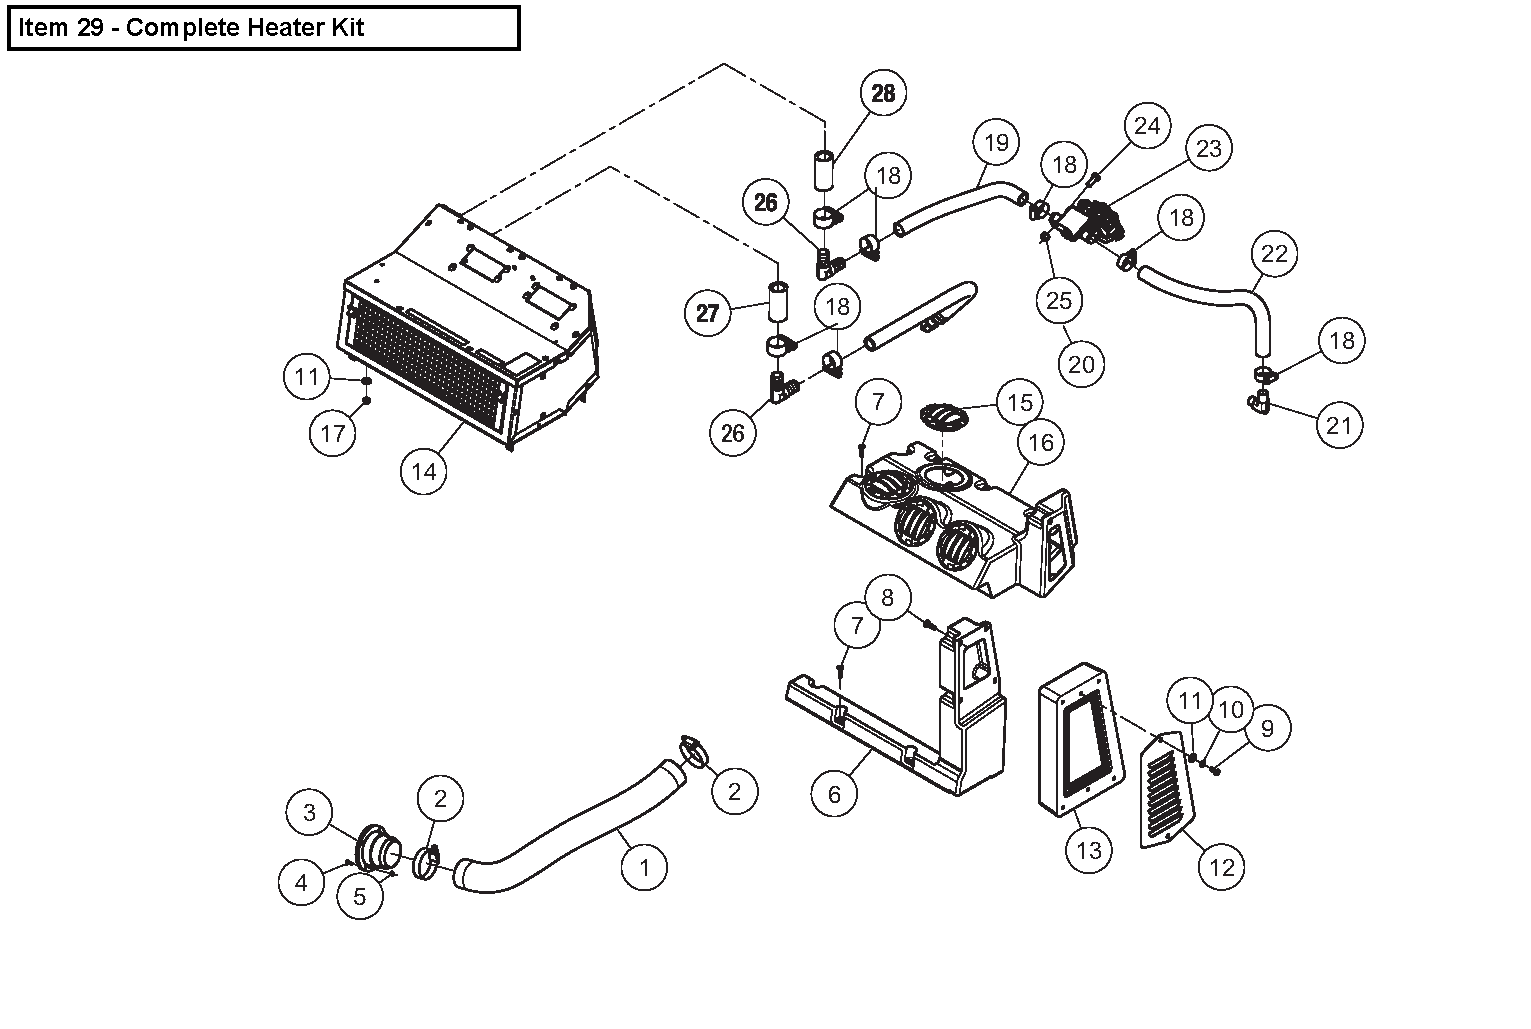 Diagram 28-B Cab Heater - Optional